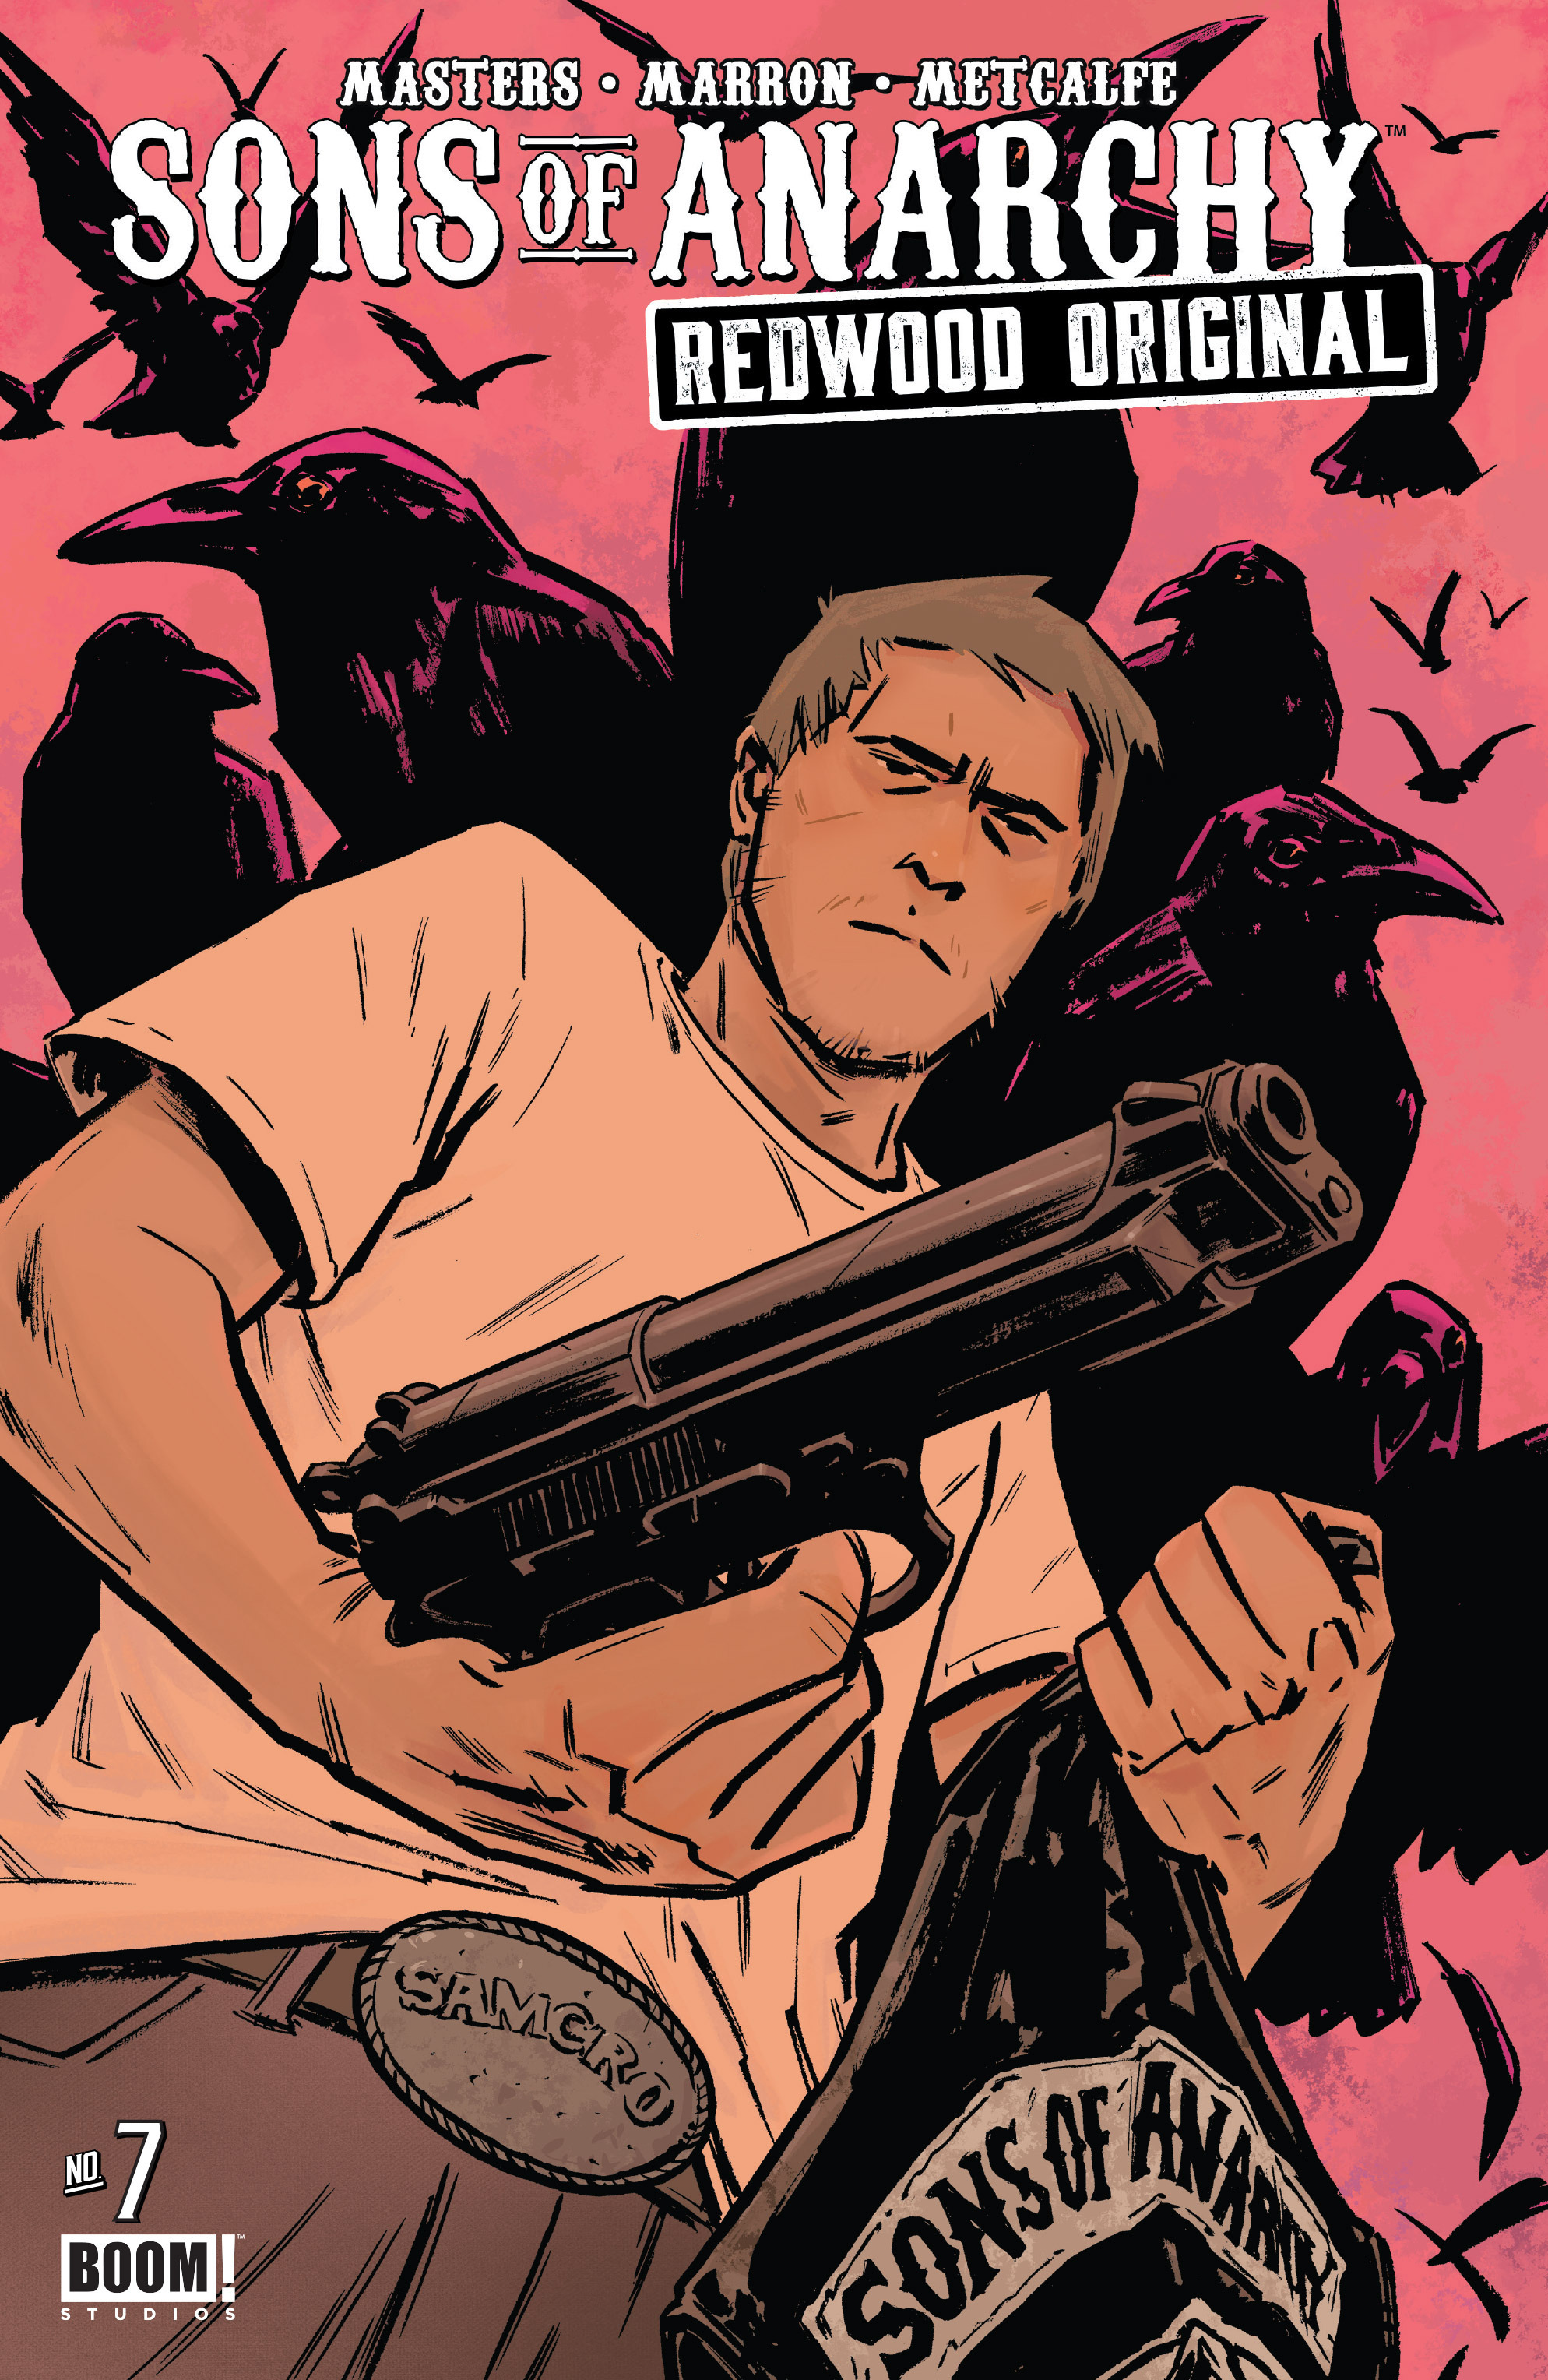 Read online Sons of Anarchy: Redwood Original comic -  Issue #7 - 1